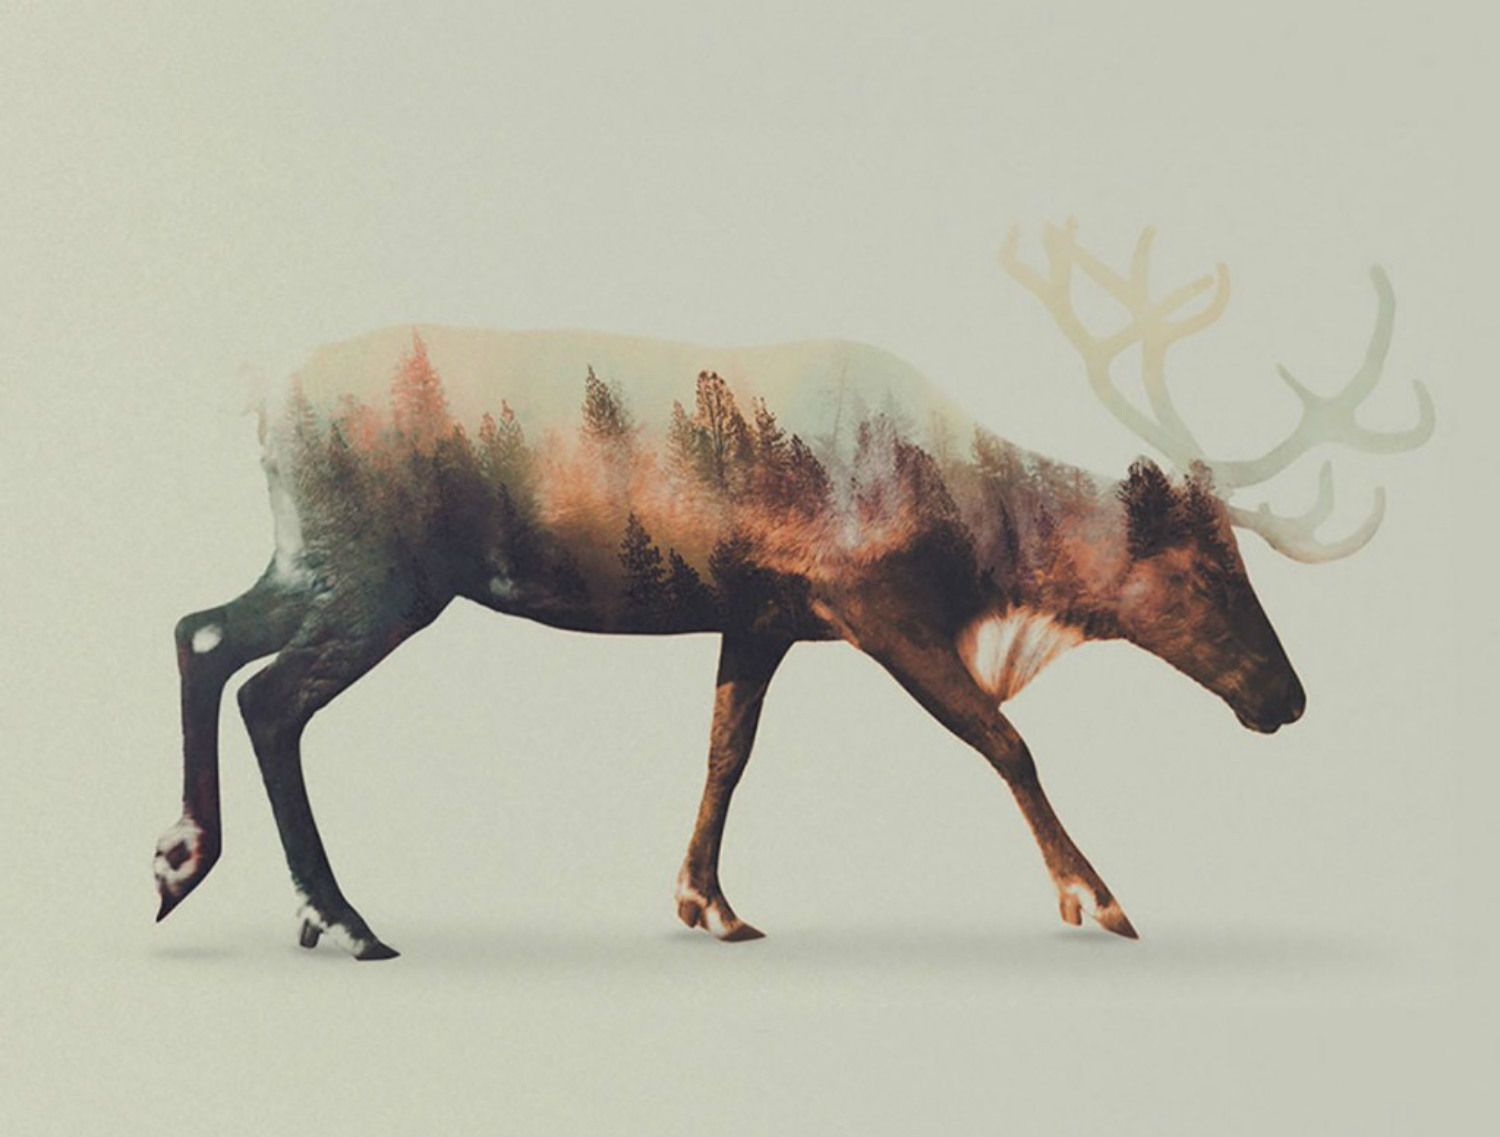 andreas lie double exposure animals